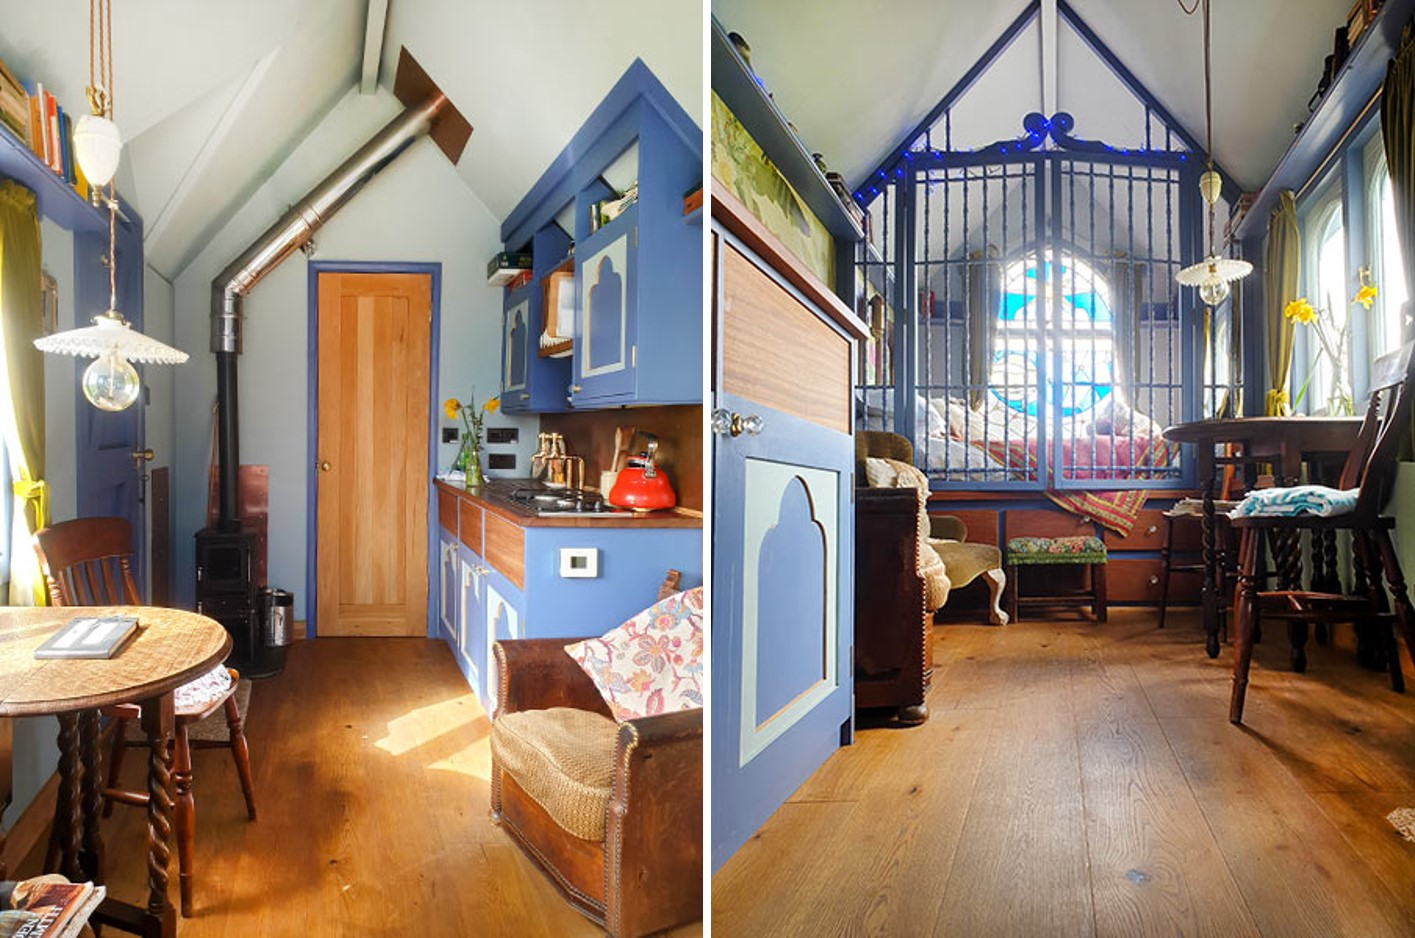 Tabernacle Farrow and Ball paint and wood floor